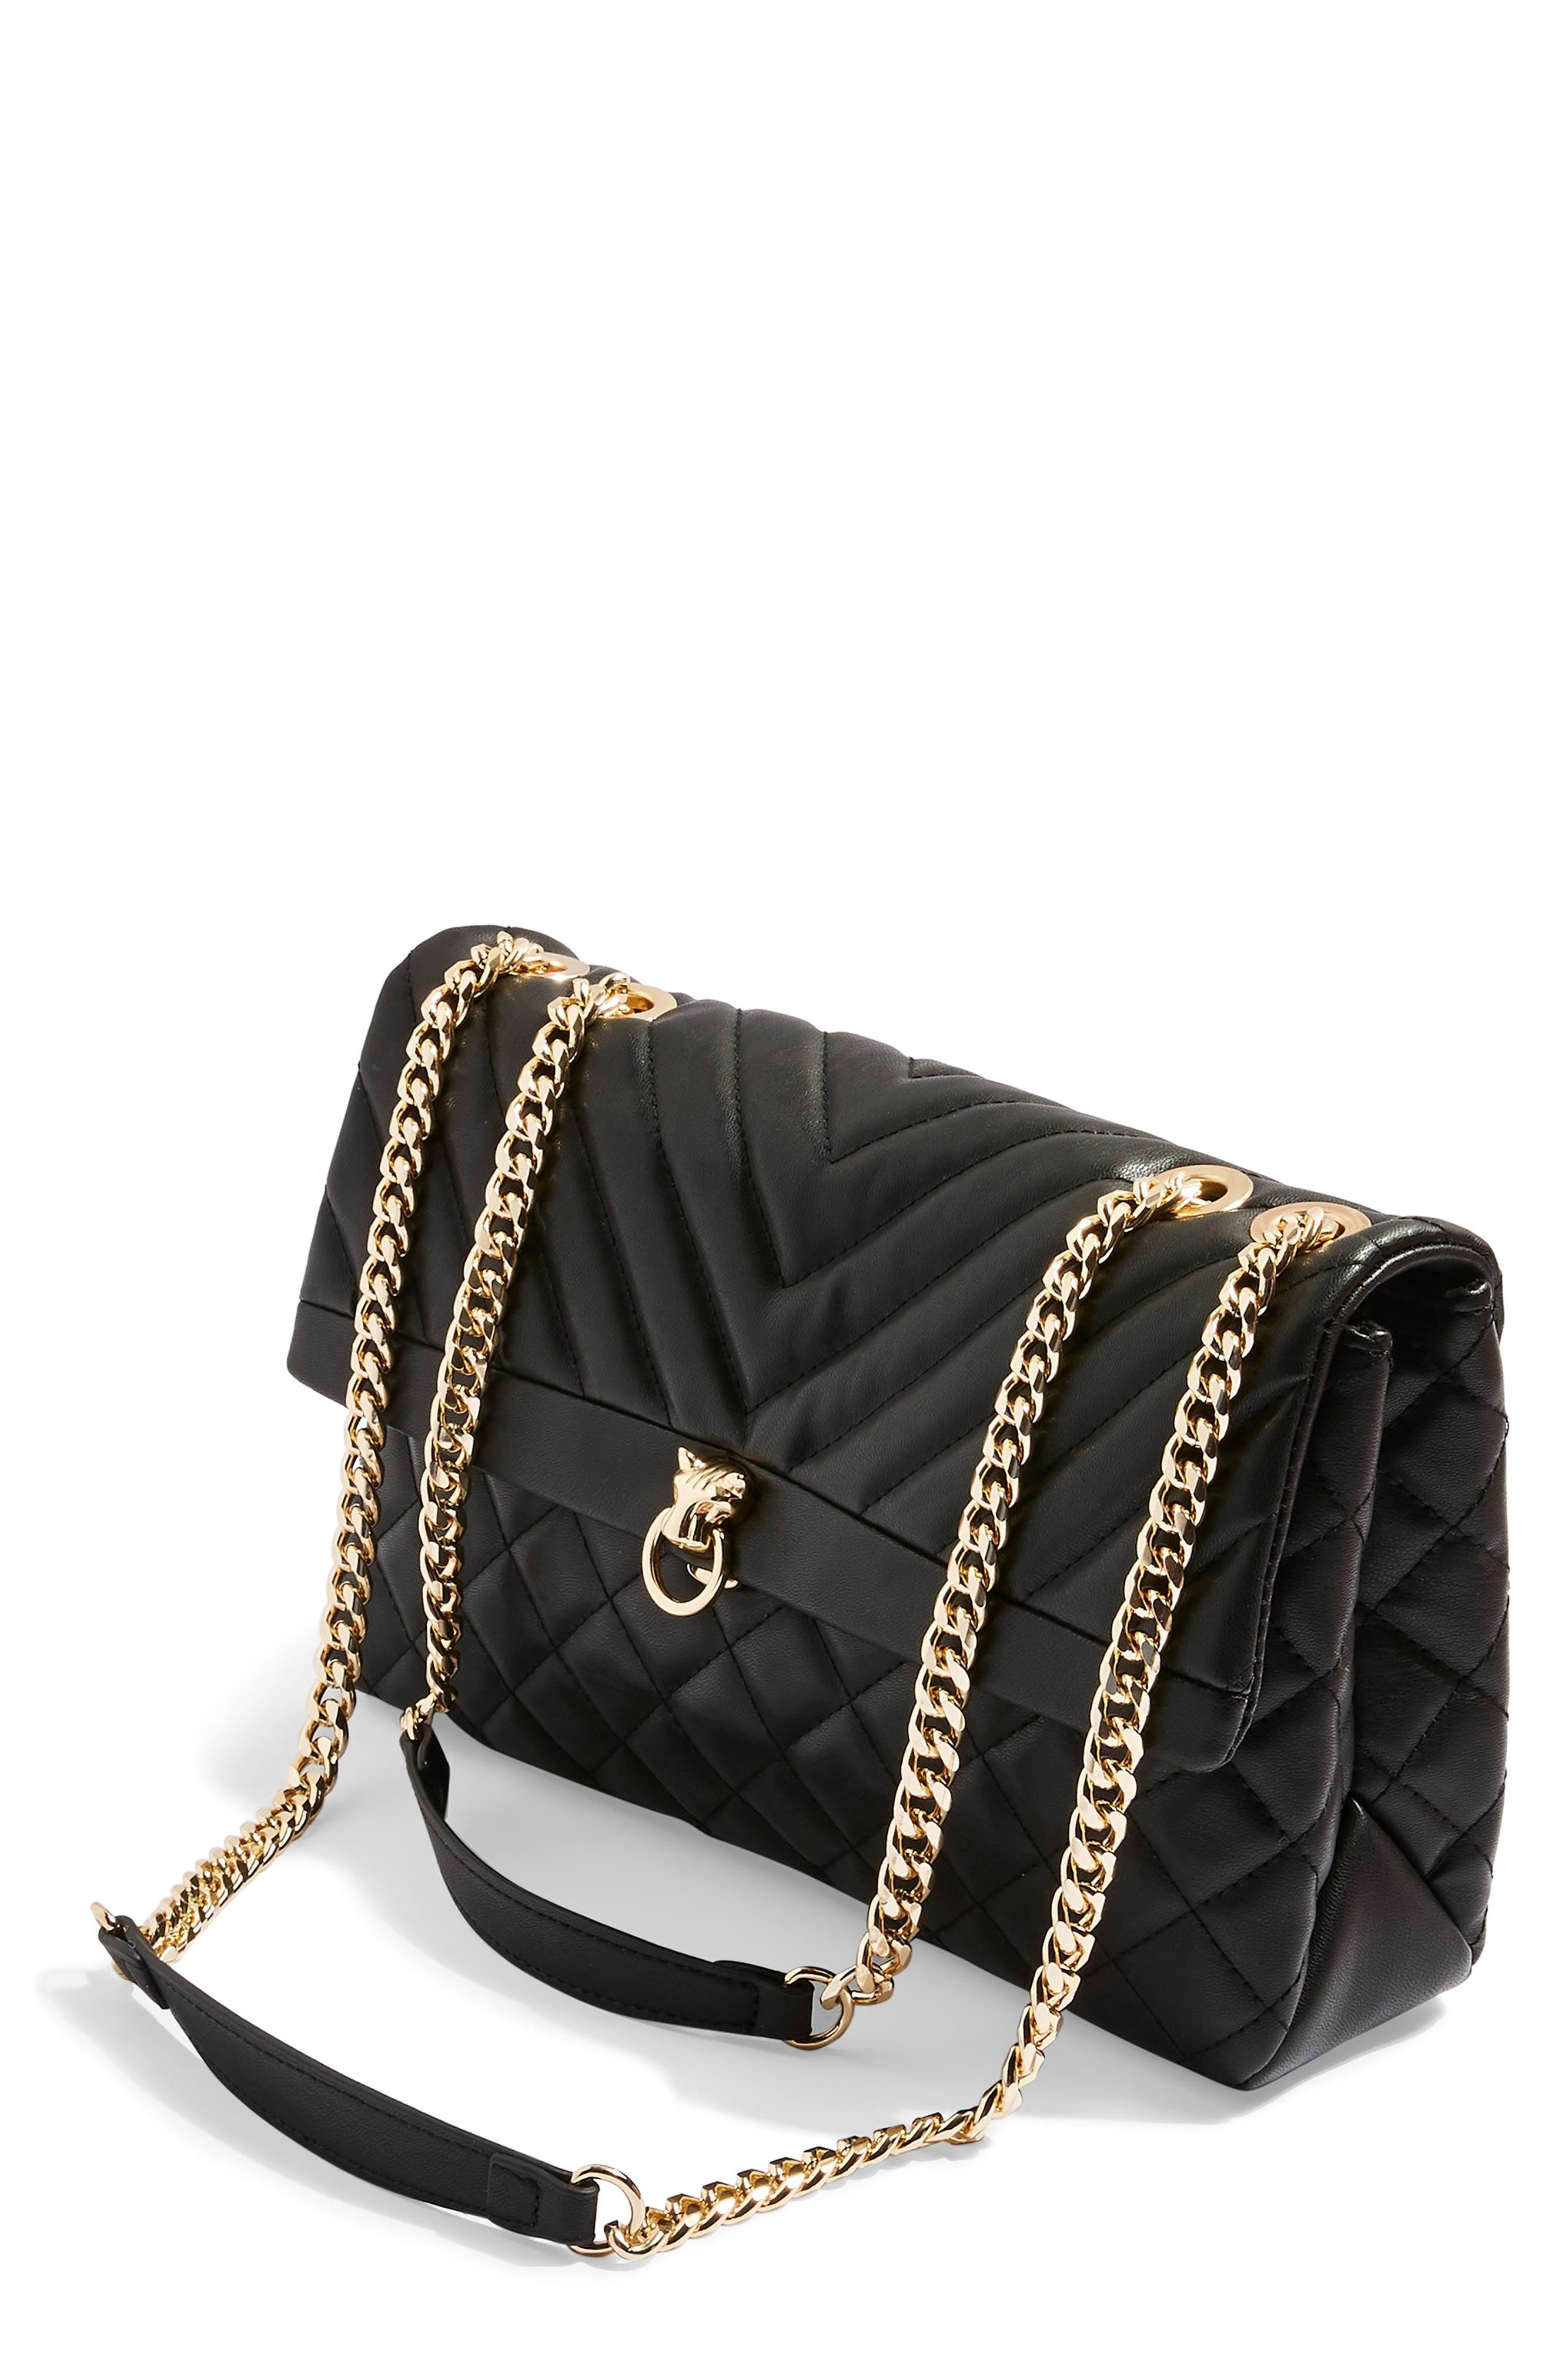 TOPSHOP Panther Quilted Faux Leather Shoulder Bag, Main, color, 001